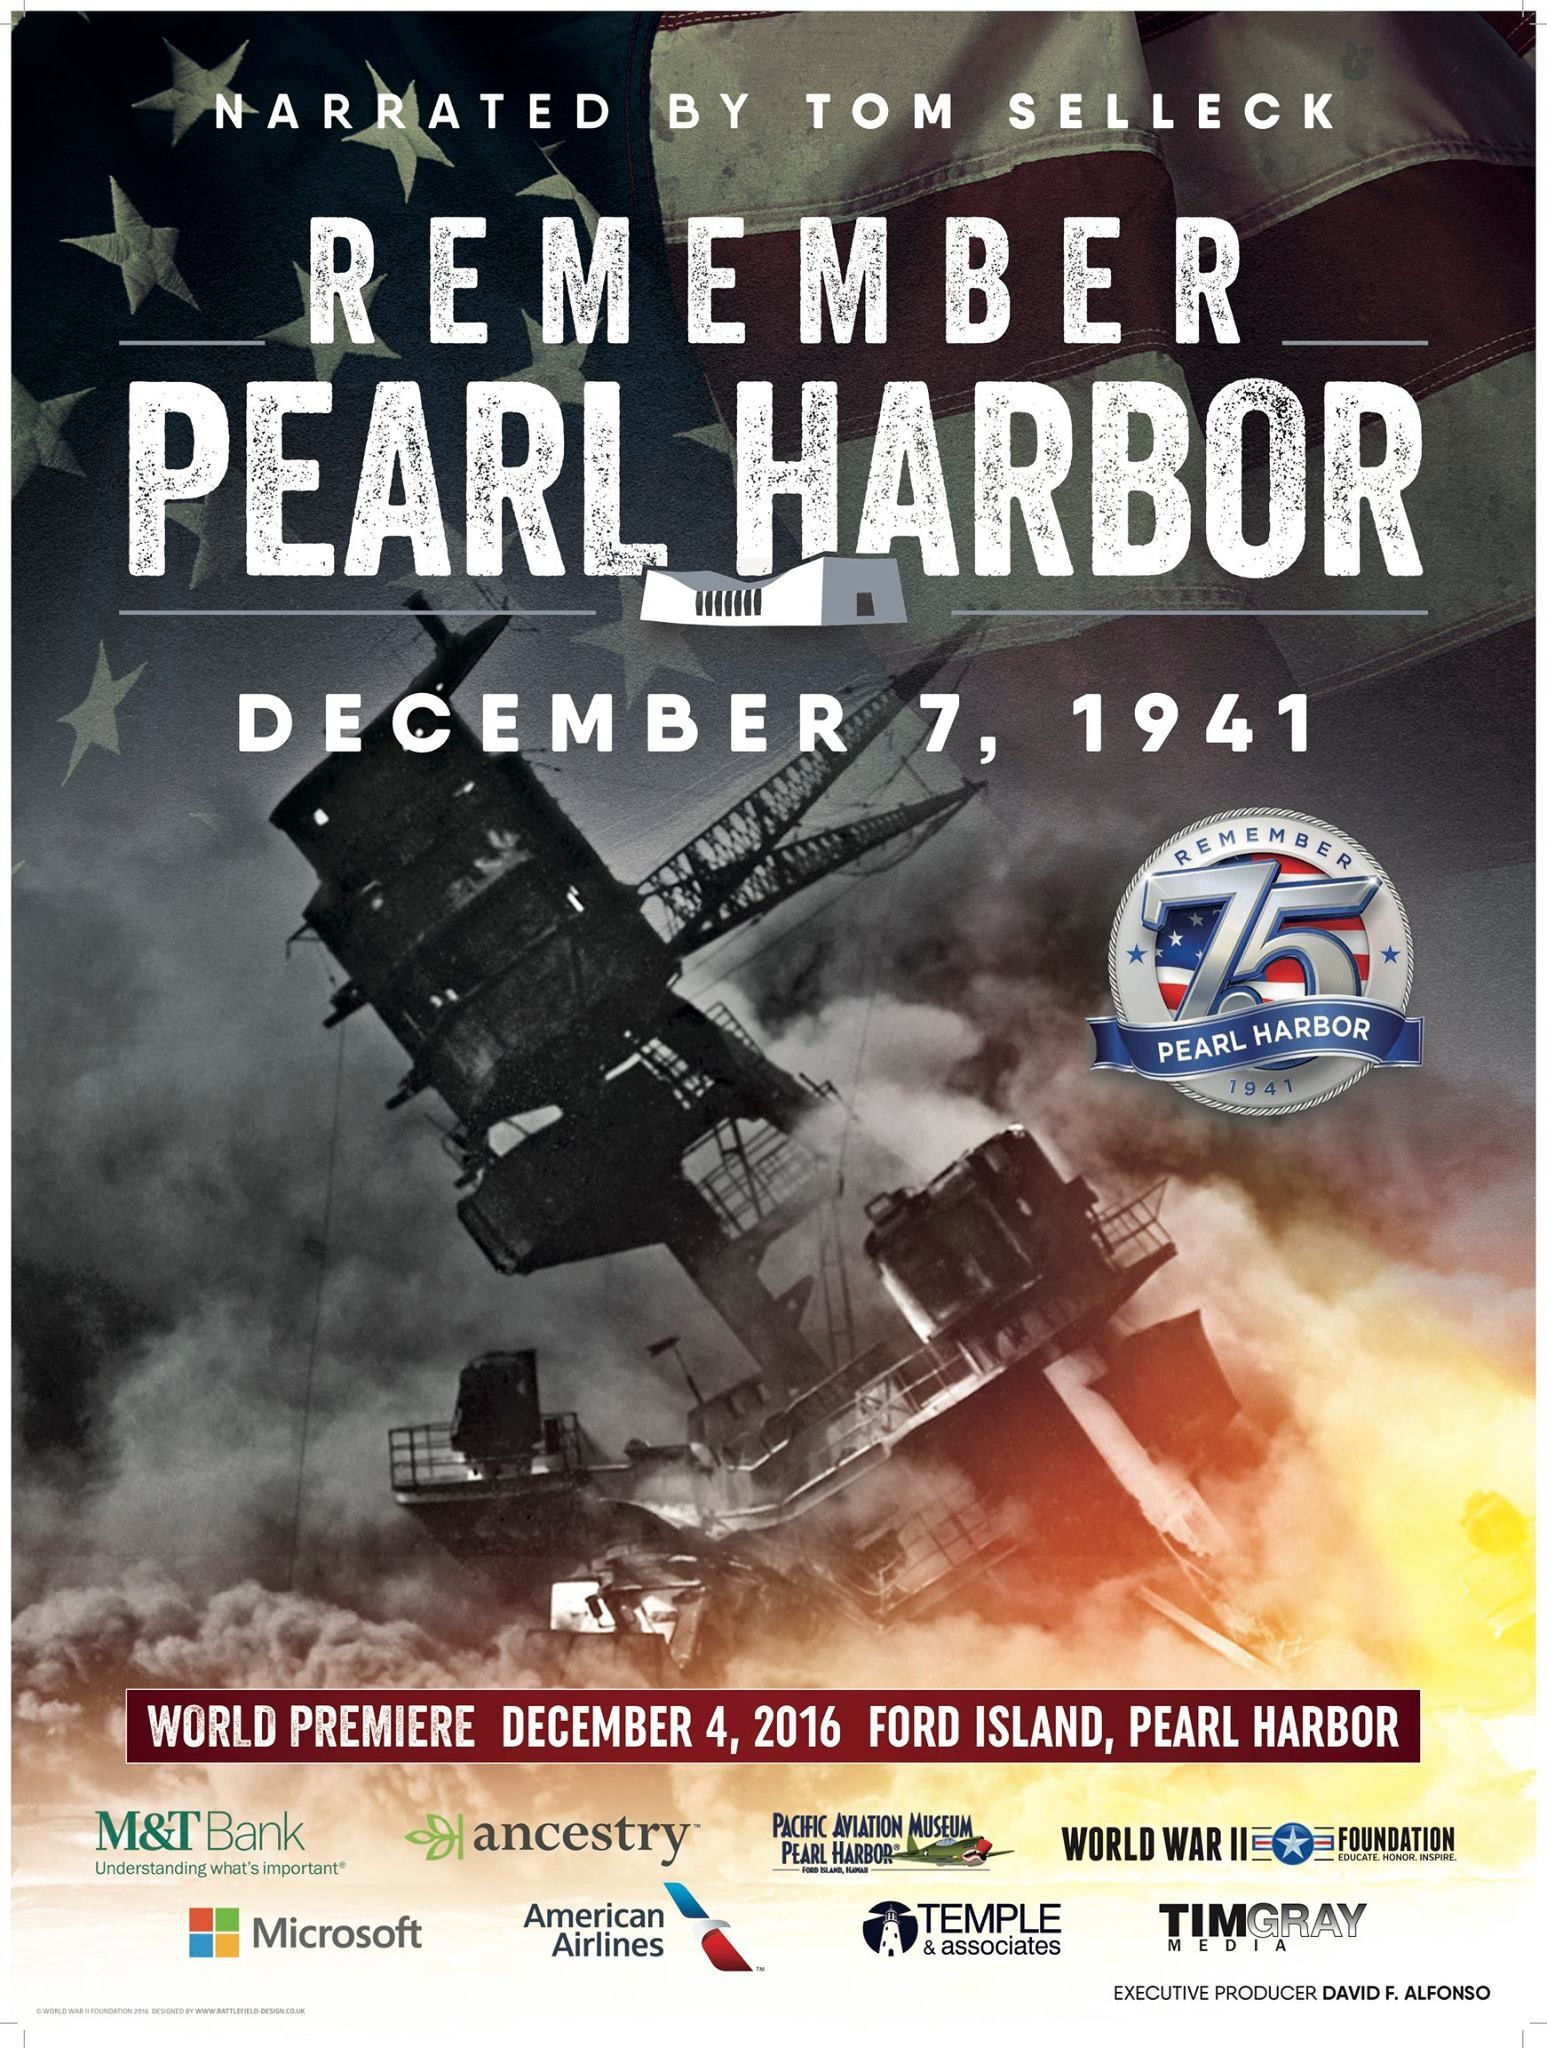 Pin by Bubbatbass on PEARL HARBOR Remember pearl harbor